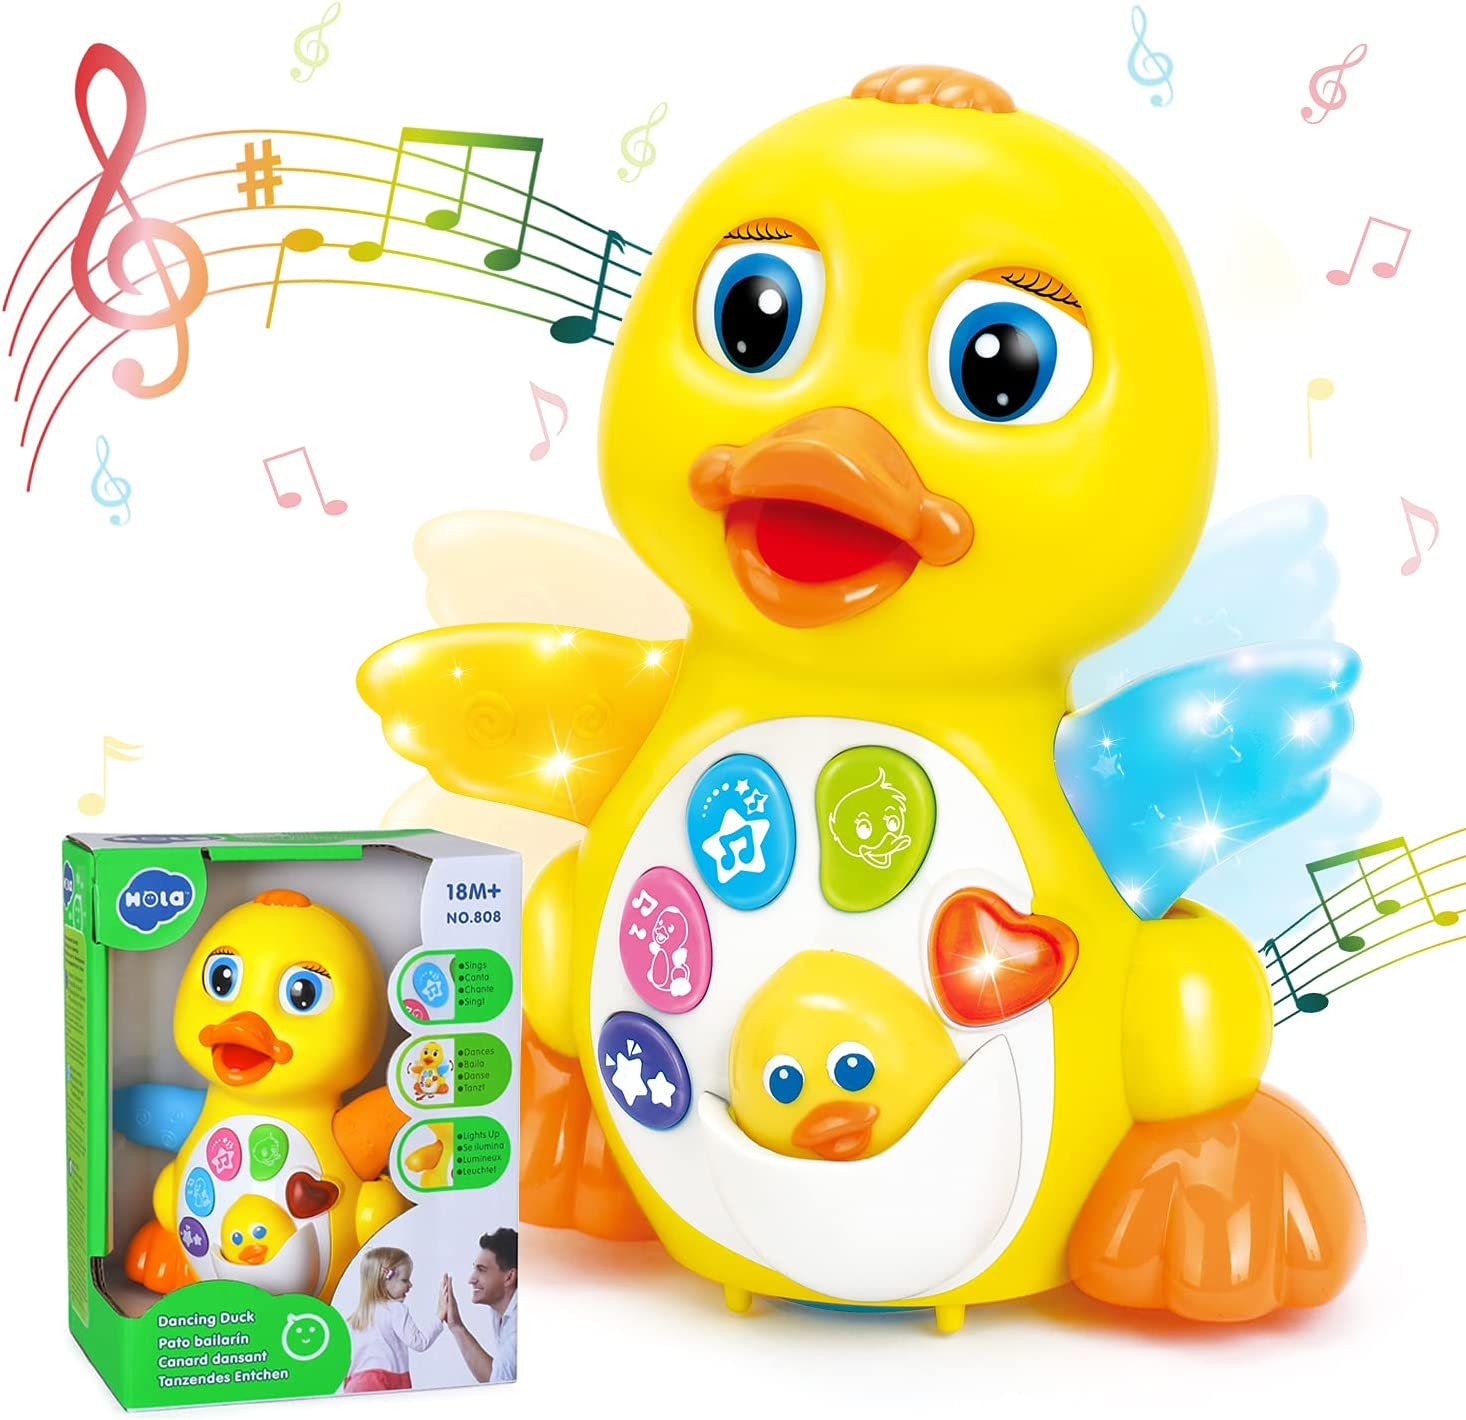 HOLA Dancing Walking Yellow Duck Interactive Action Learning Educational Light Up Musical Toy for 1 Year Old Baby Kids Boy Girl Todder Infant